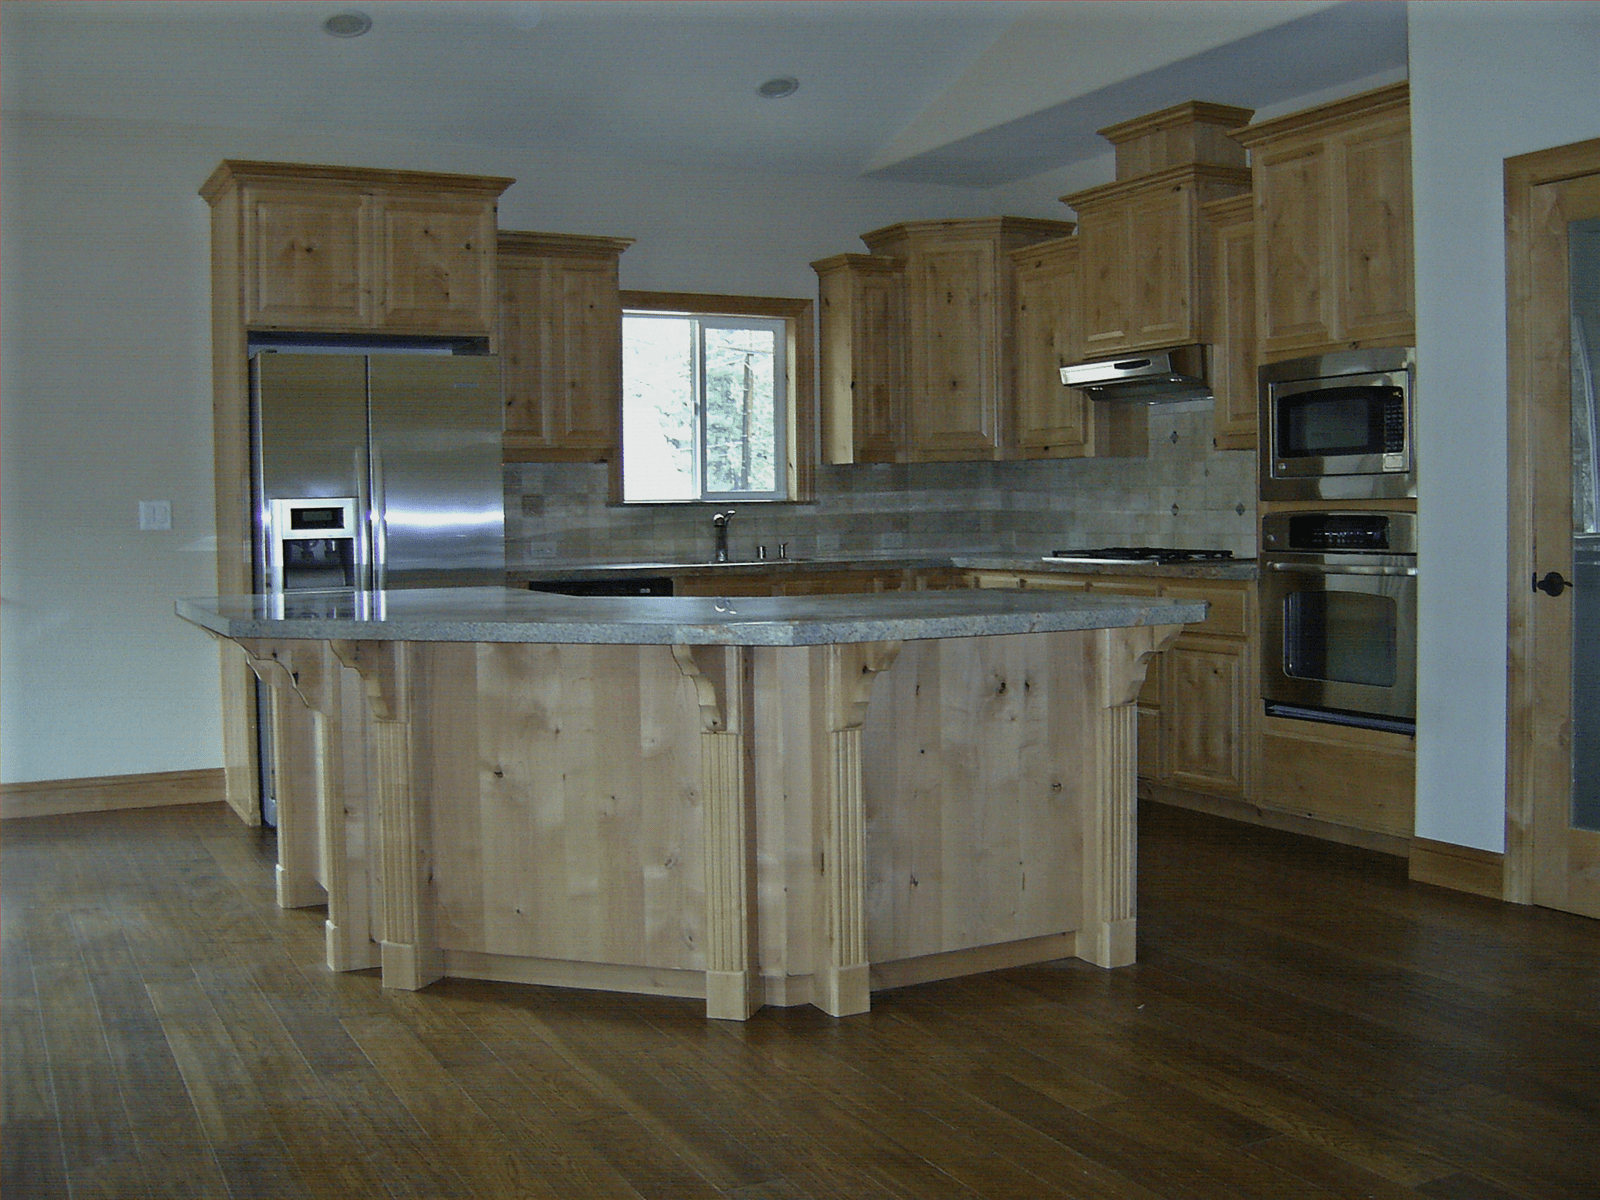 Staining Unfinished Kitchen Cabinets Natural Knotty Alder Wood Kitchen Cabinets Knotty Alder